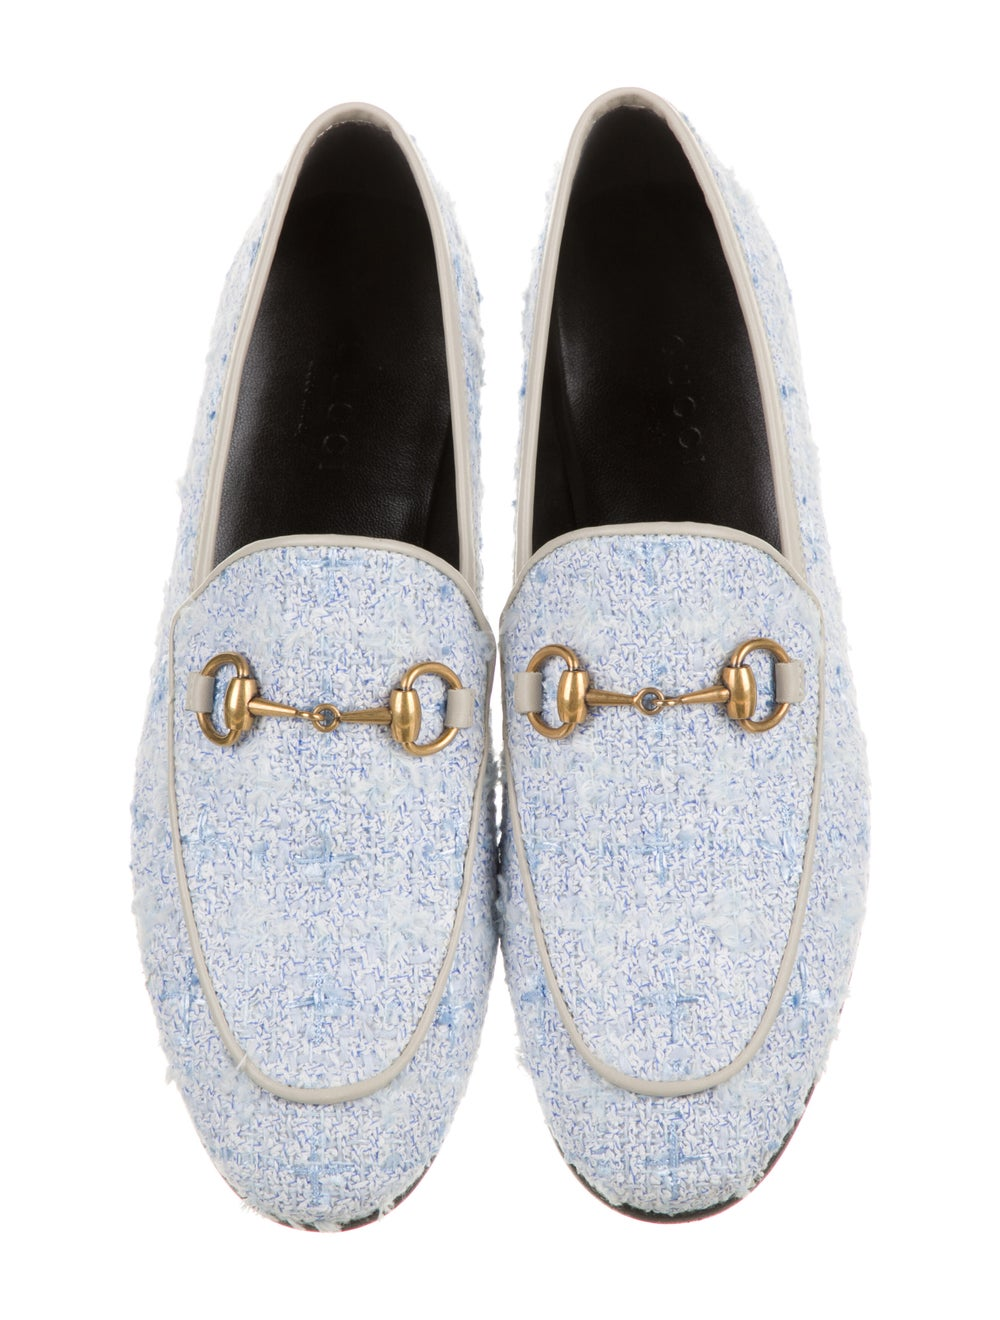 Gucci Horsebit Accent Tweed Pattern Loafers w/ Ta… - image 3